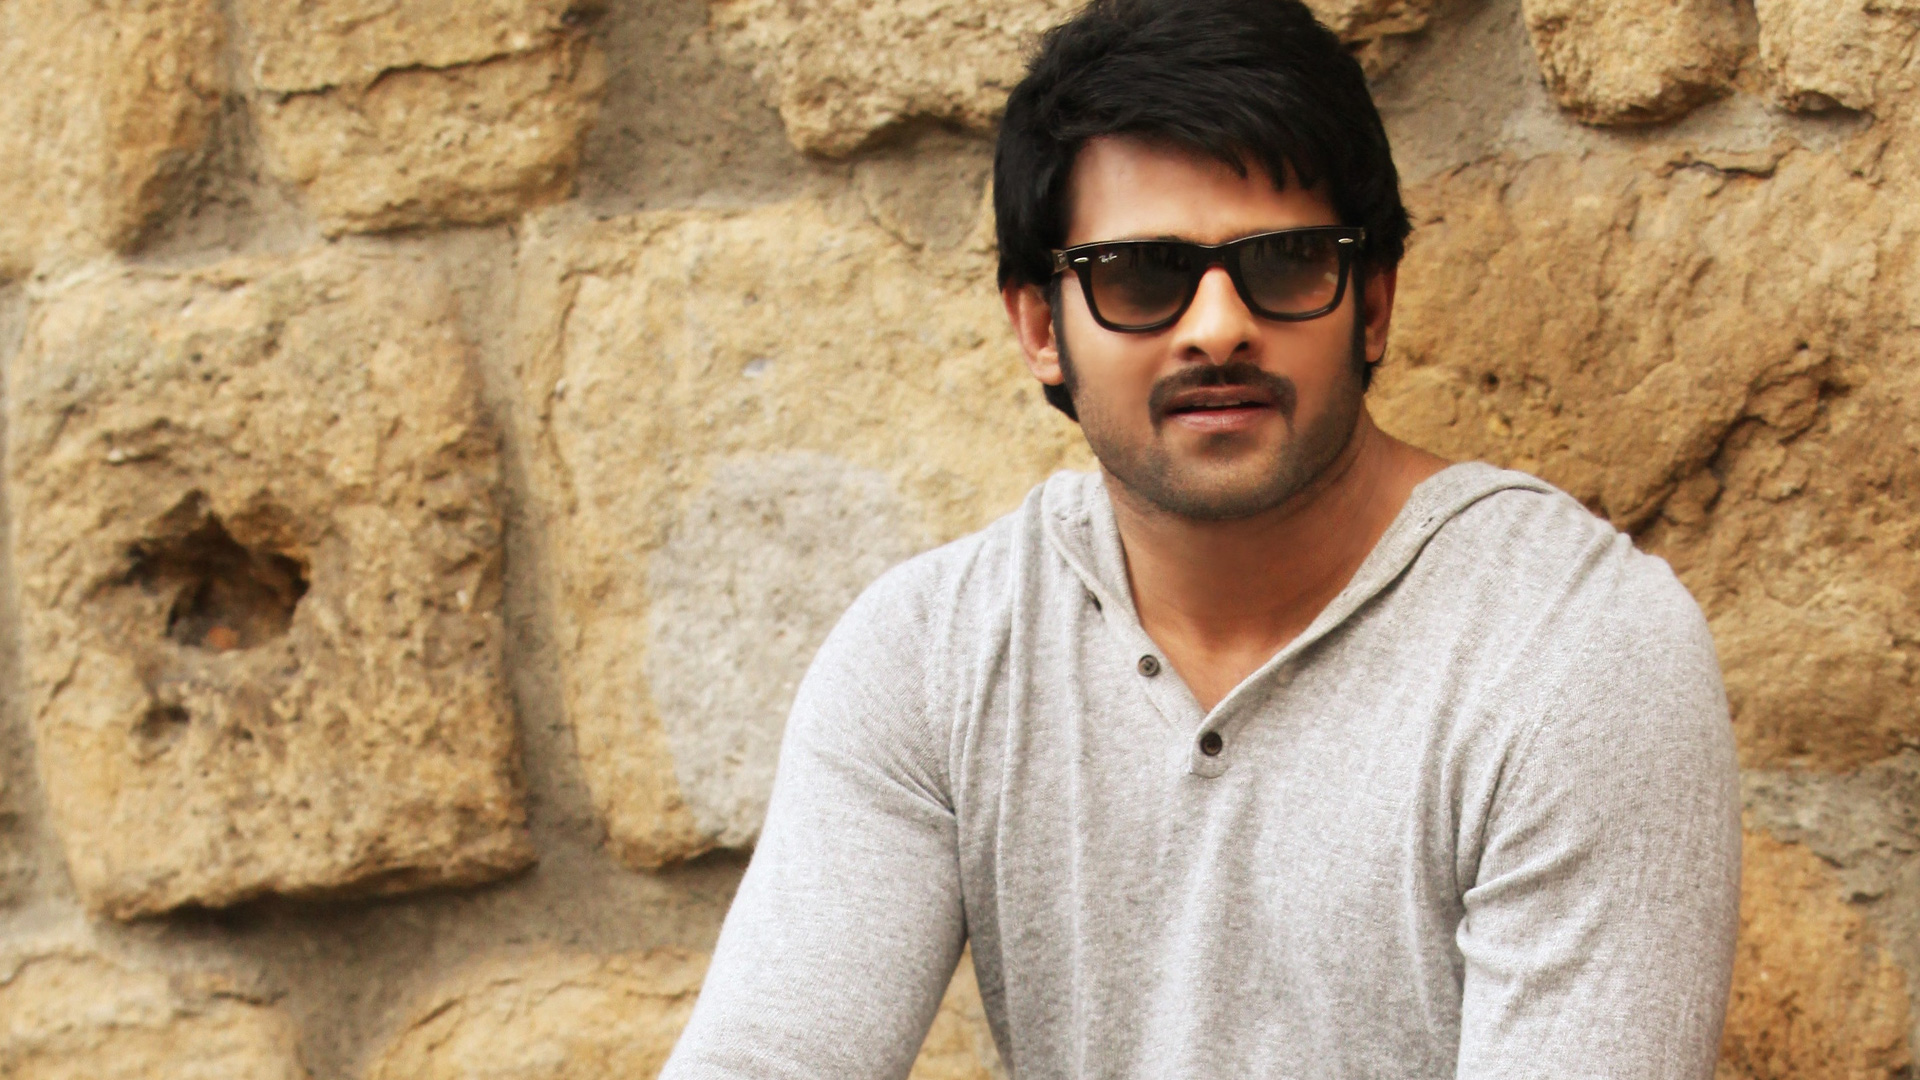 Prabhas Hd Wallpapers Latest Prabhas Wallpapers Hd Free Download 1080p To 2k Filmibeat